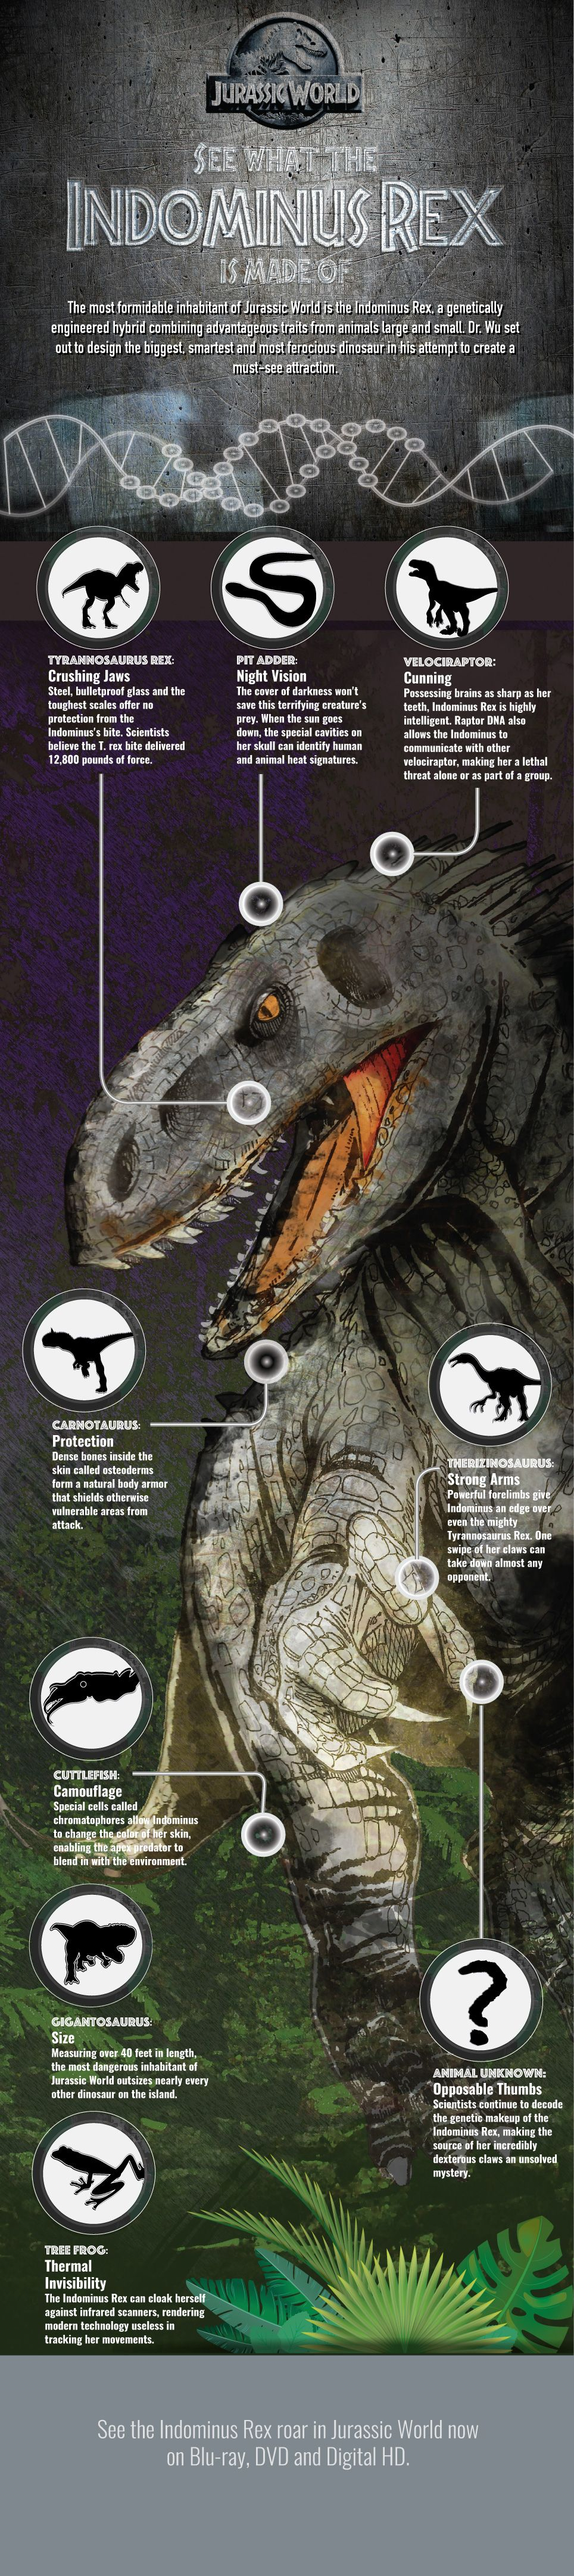 Infographics: Jurassic world made in an infographic